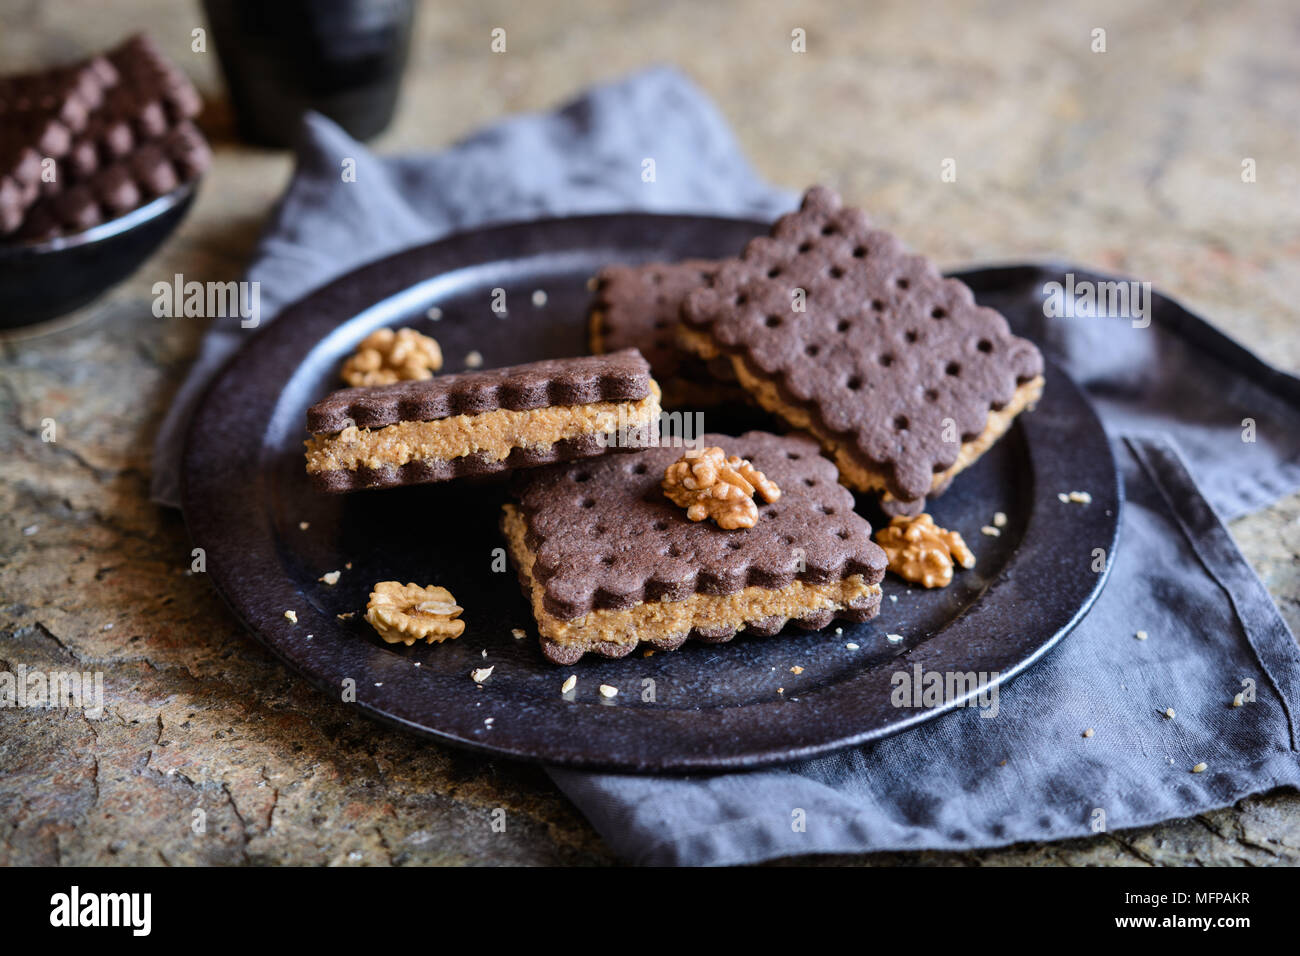 Delicious cocoa sandwich biscuits stuffed with walnut and coffee filling - Stock Image